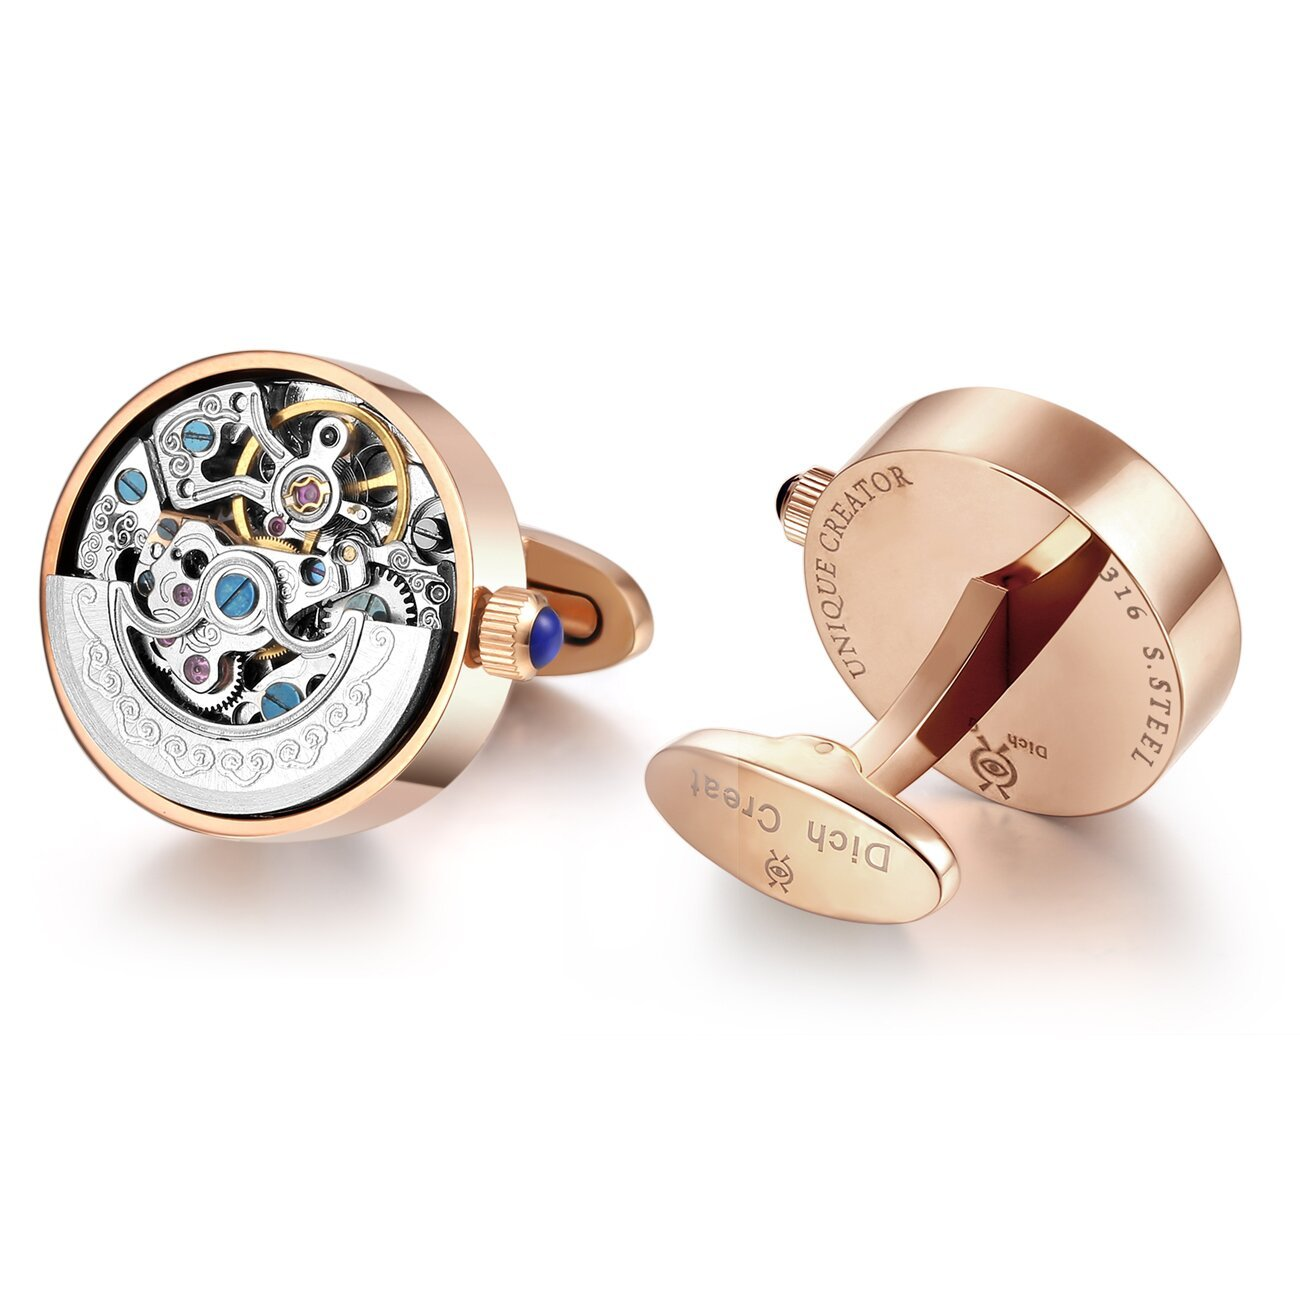 Dich Creat Men's Stainless Steel Rose Gold PVD Automatic Working Movement Cufflink by Dich Creat